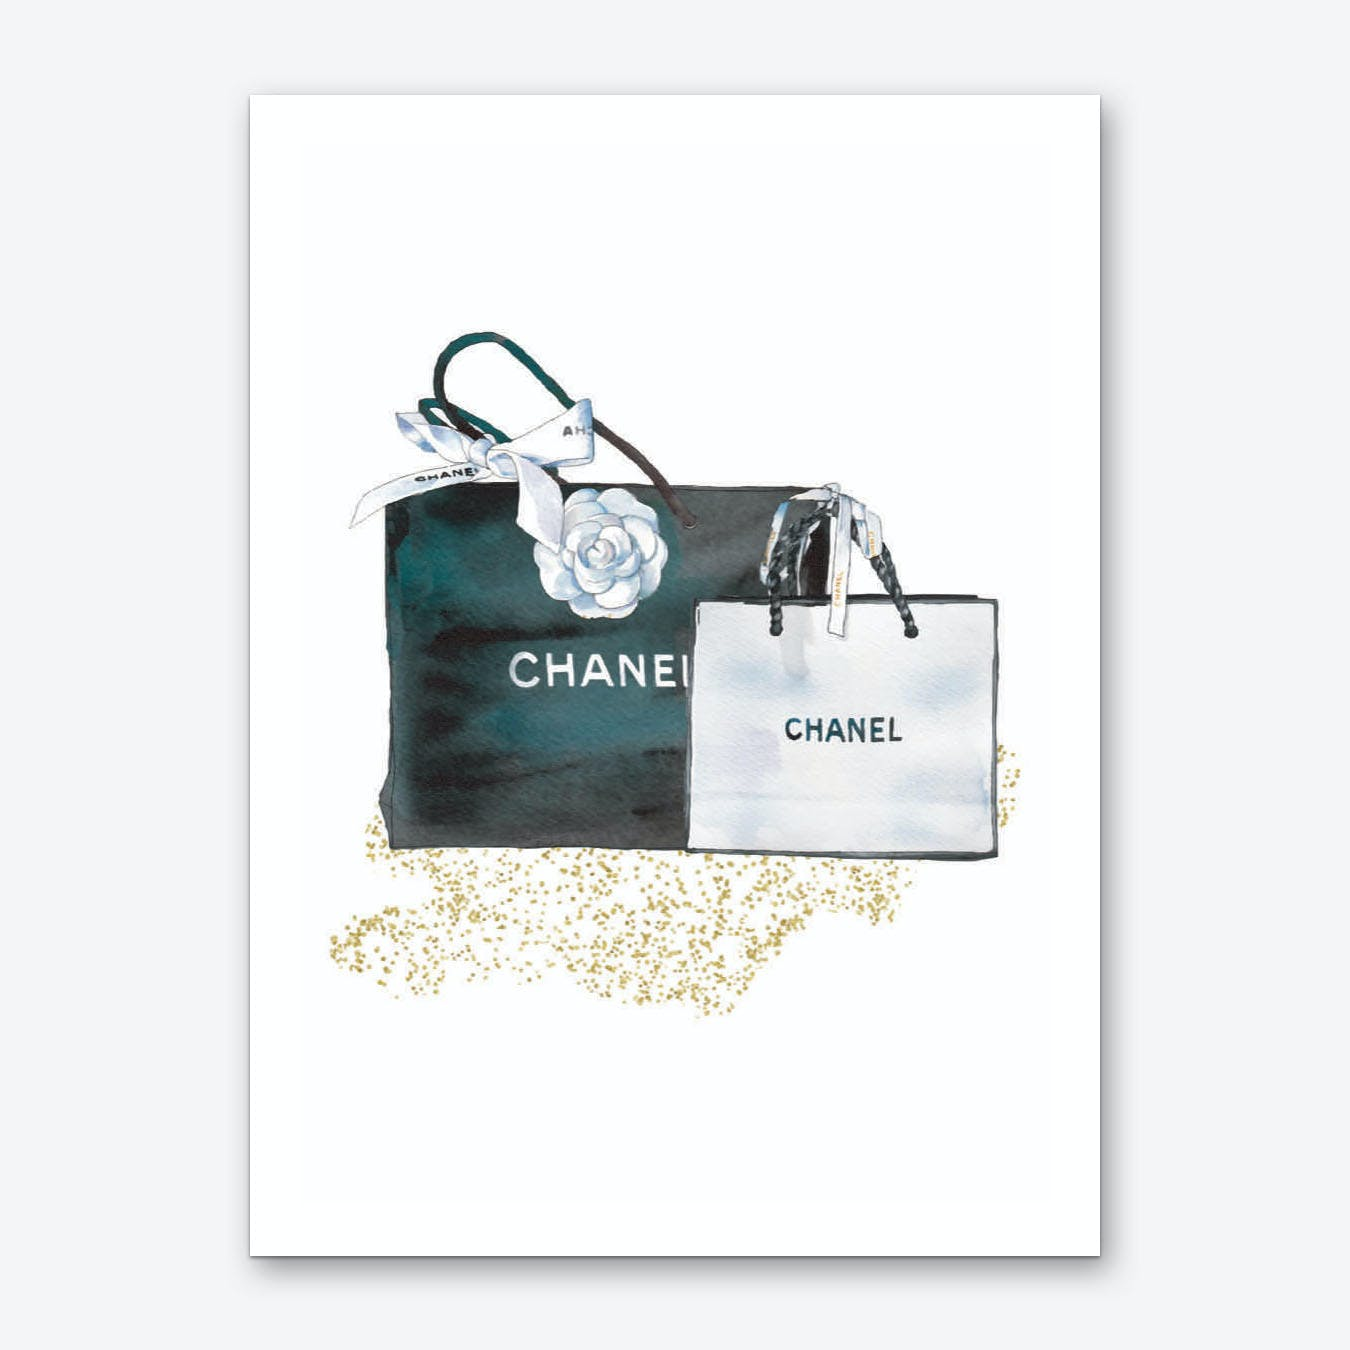 Chanel Black and White Bags Art Print